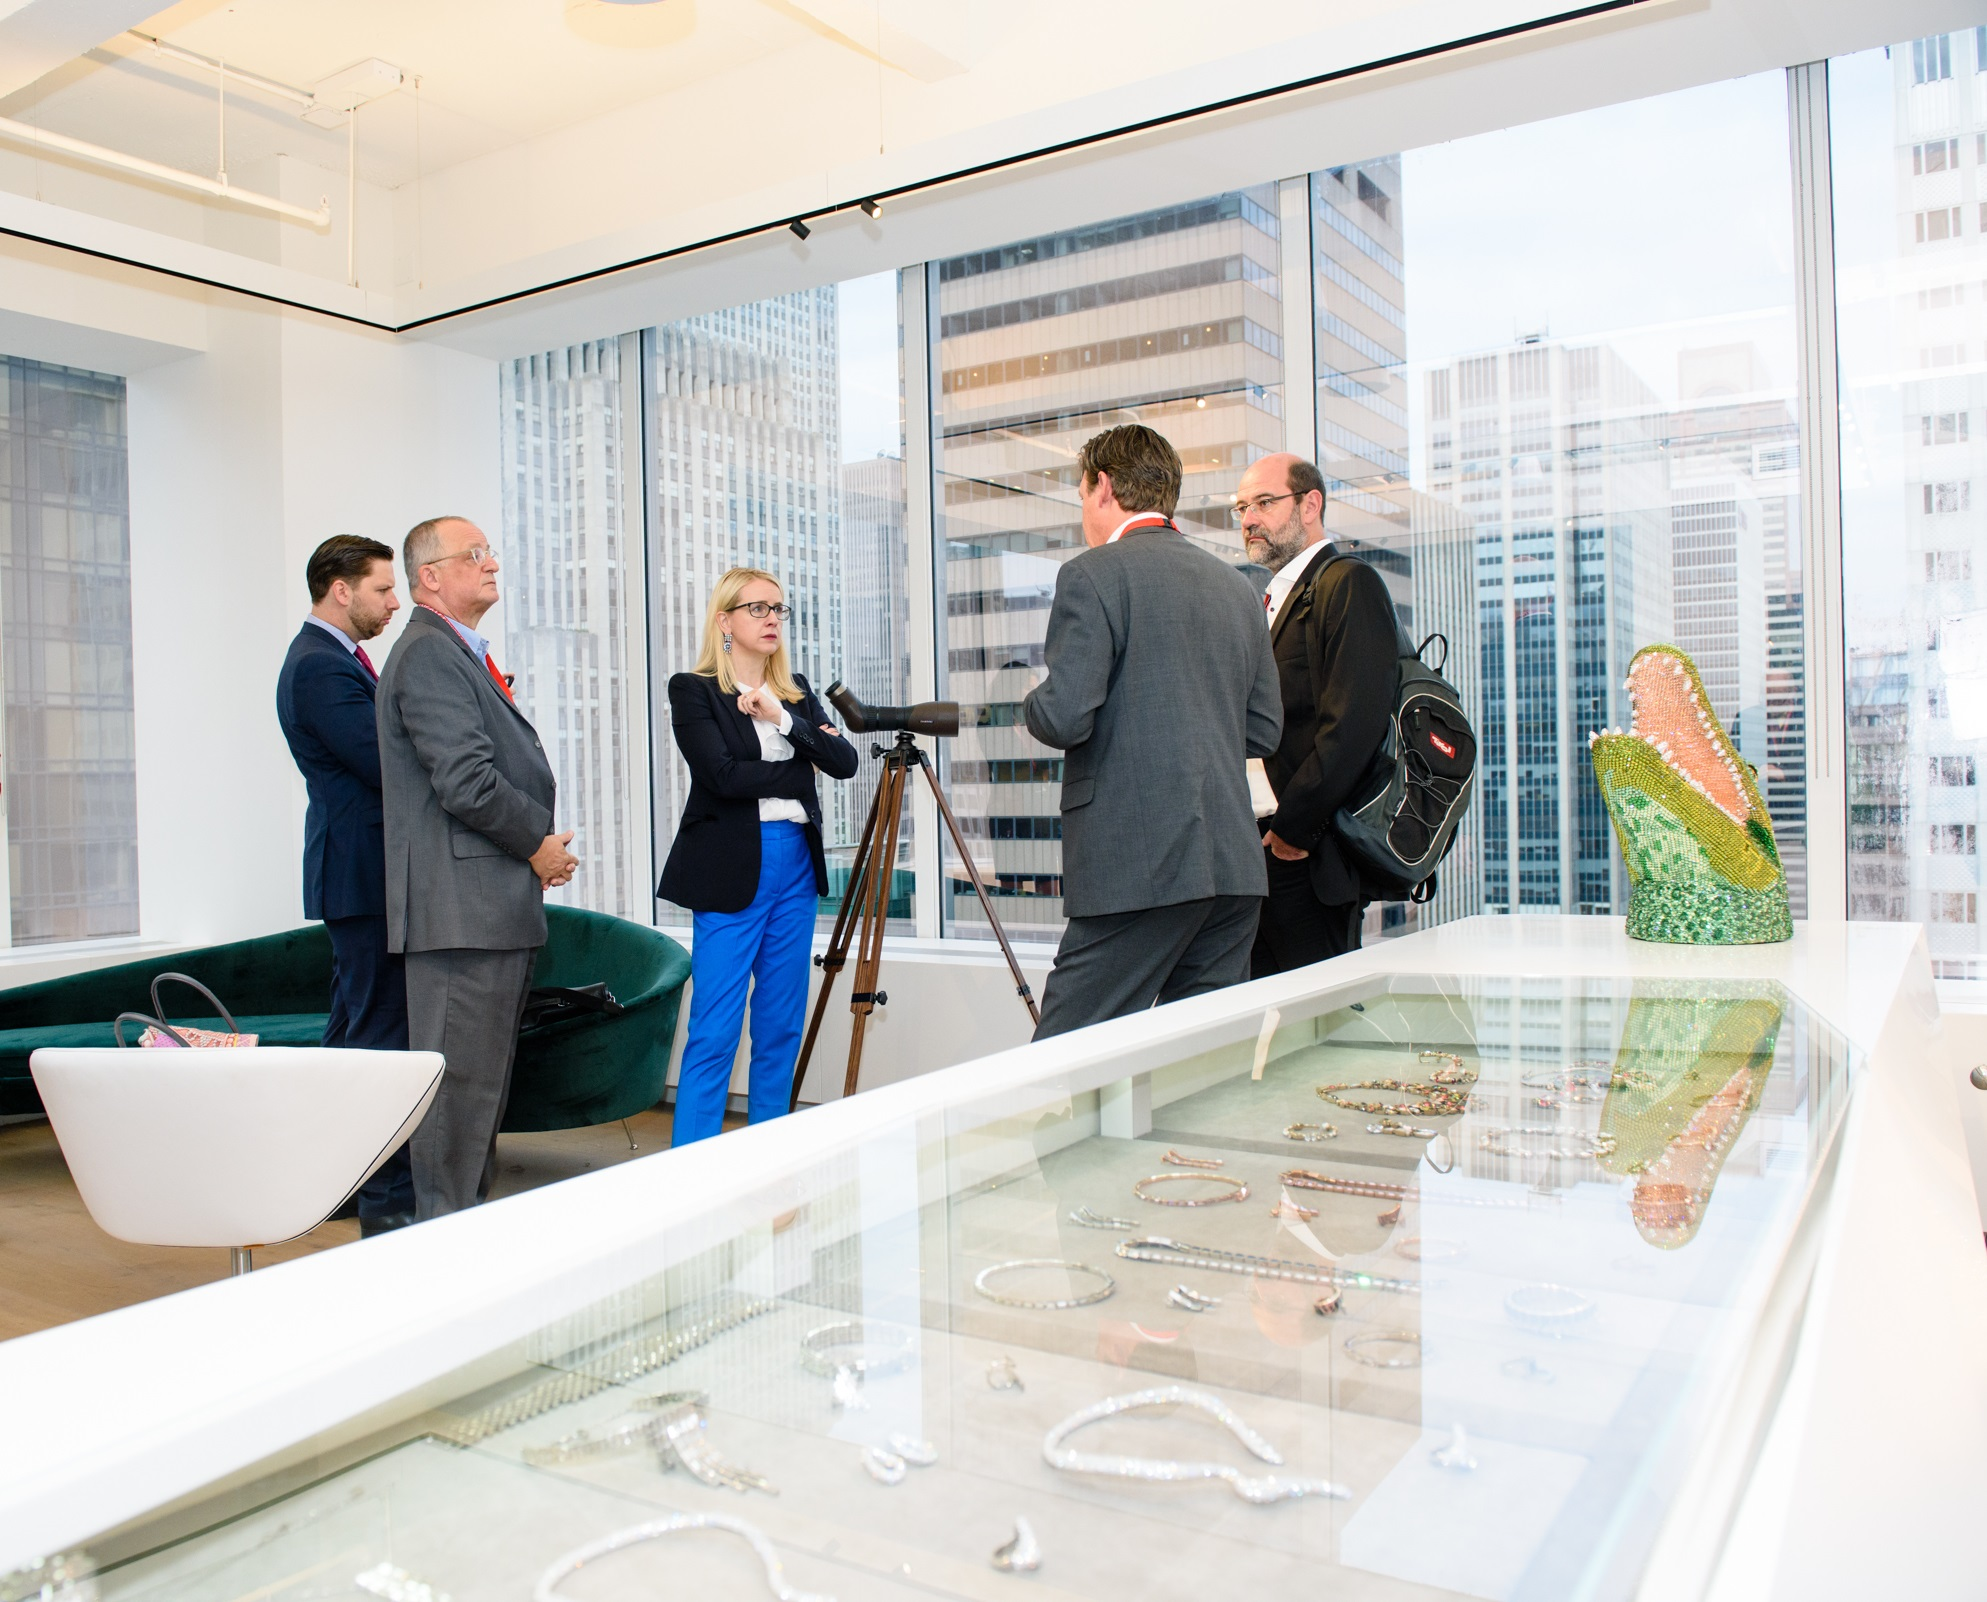 Minister Schramböck visiting the Austrian flagship company Swarovski in the heart of New York City (c) Philipp Hartberger